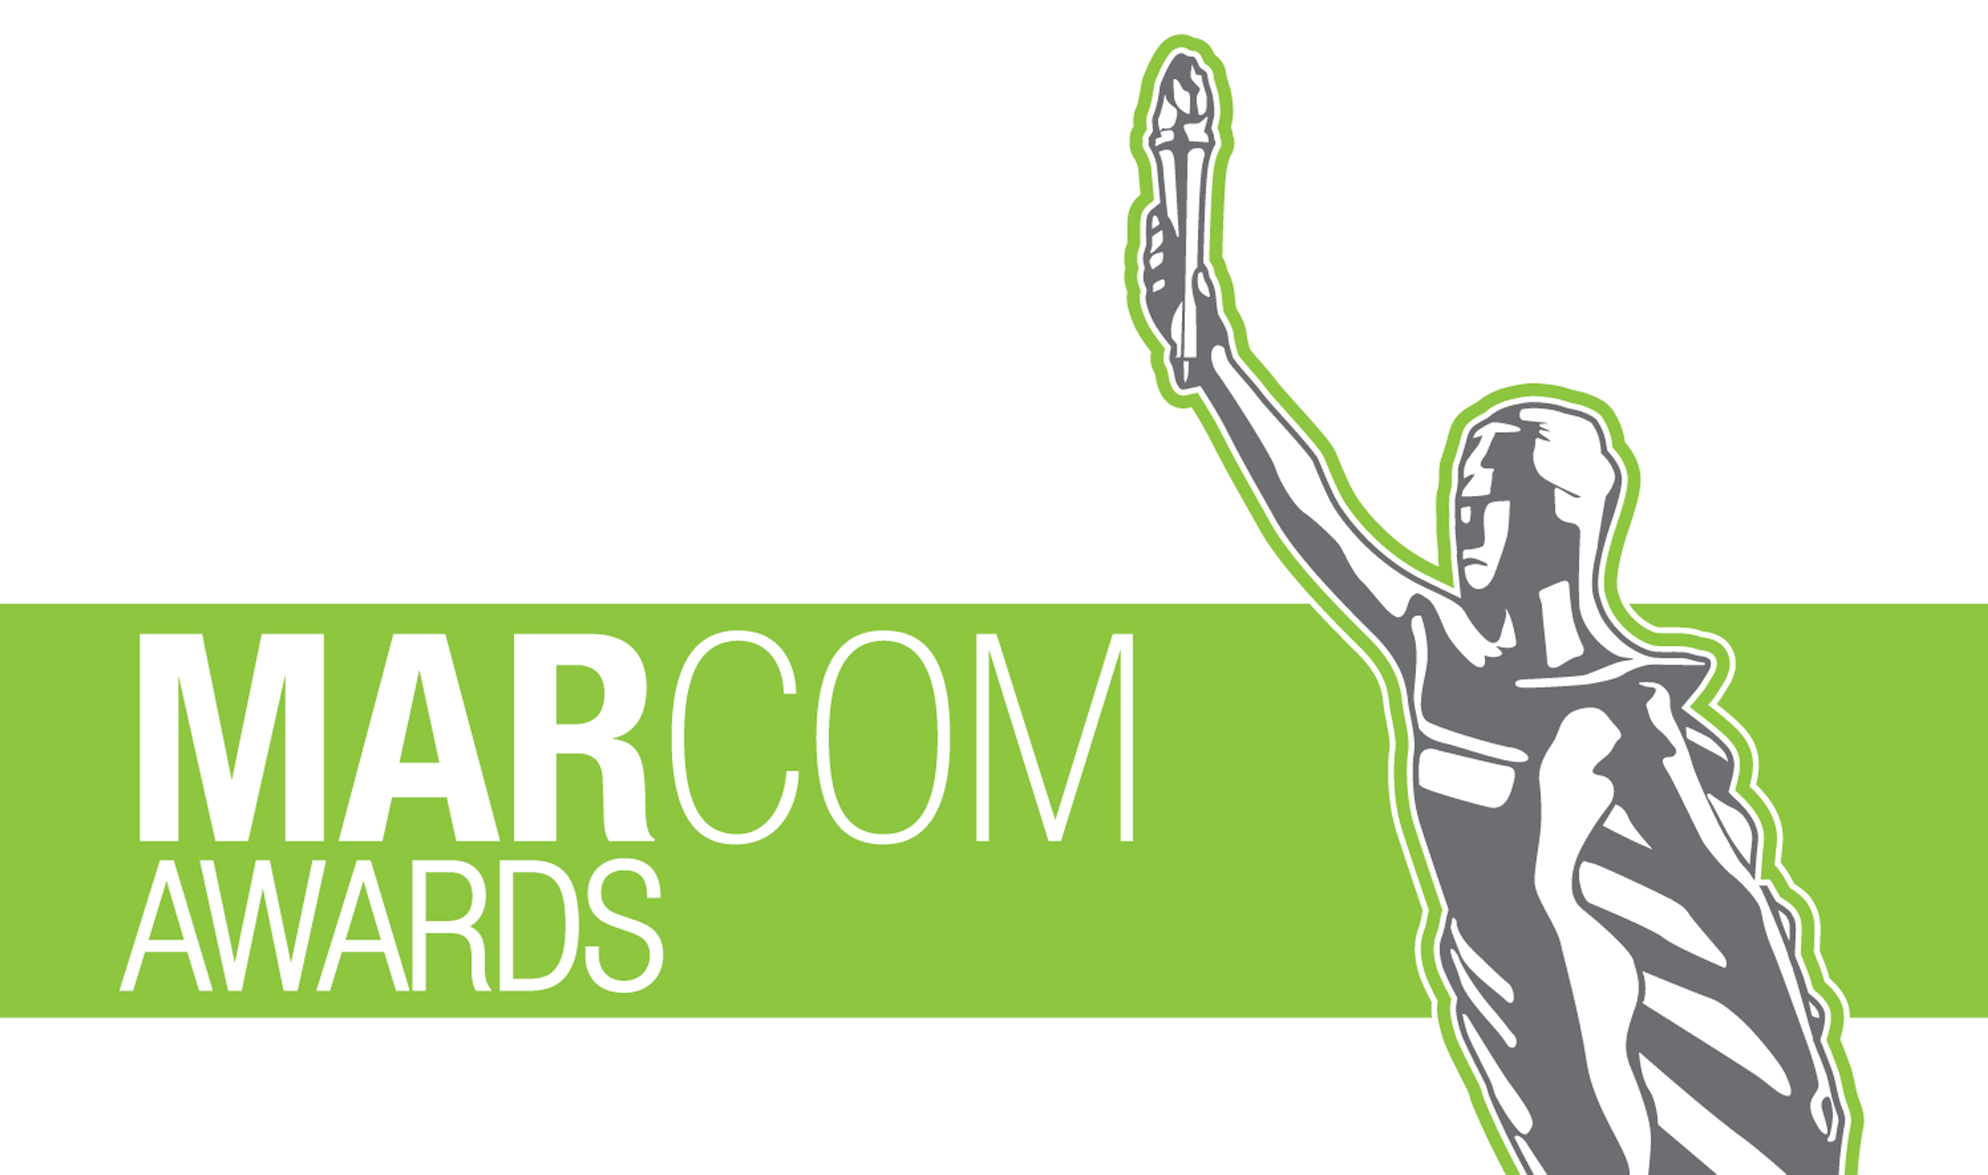 MarCom Awards for magazine, new website